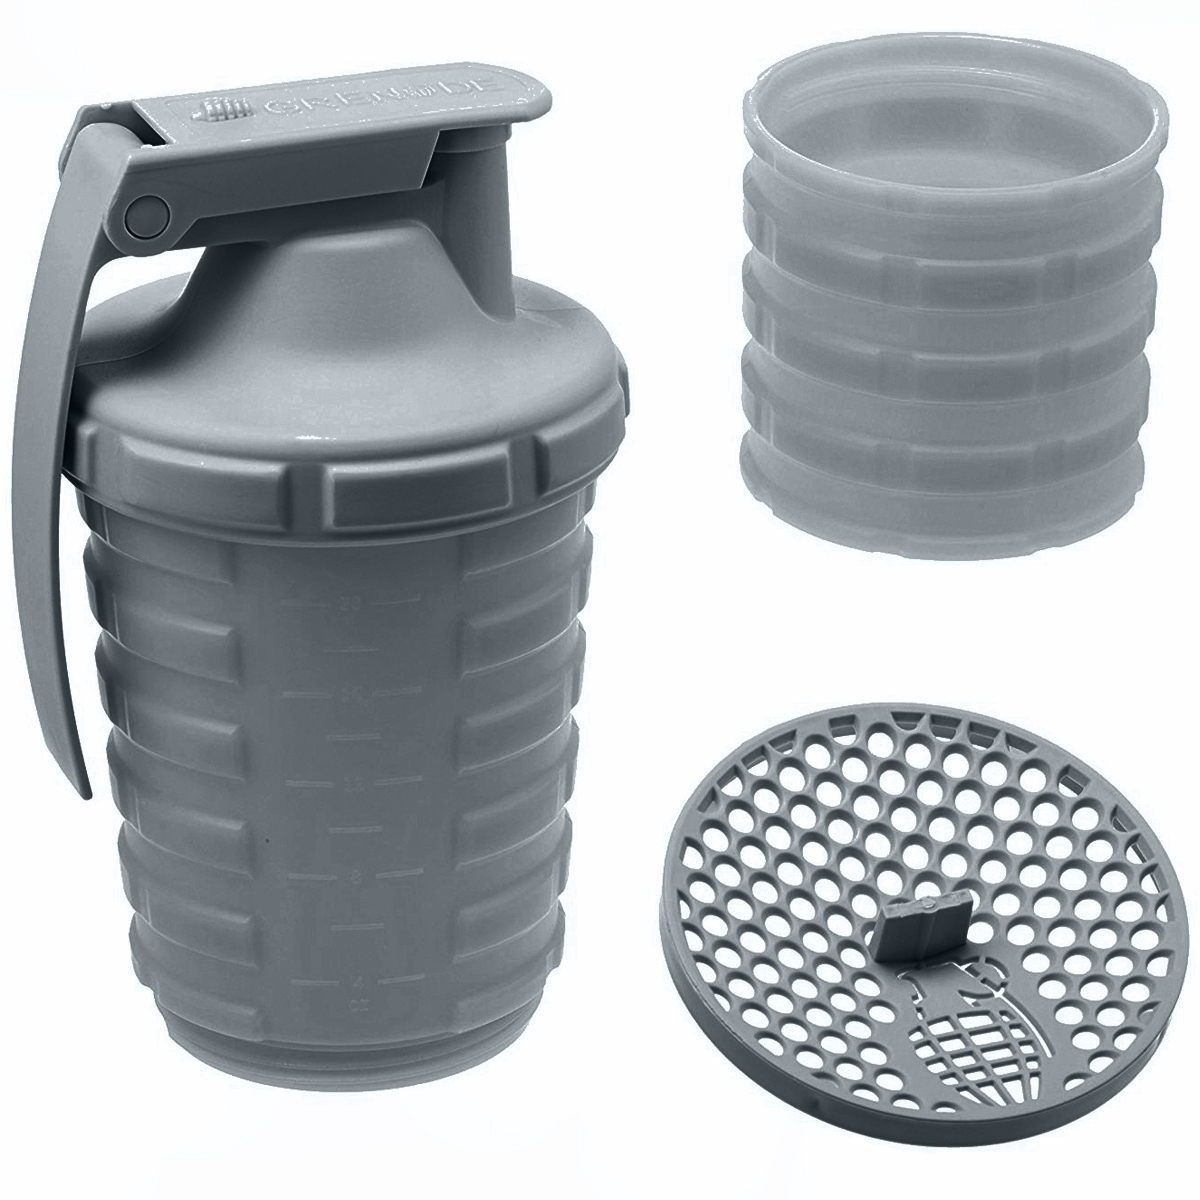 thumbnail 10 - Grenade-20-oz-Shaker-Blender-Mixer-Bottle-with-600ml-Protein-Cup-Compartment